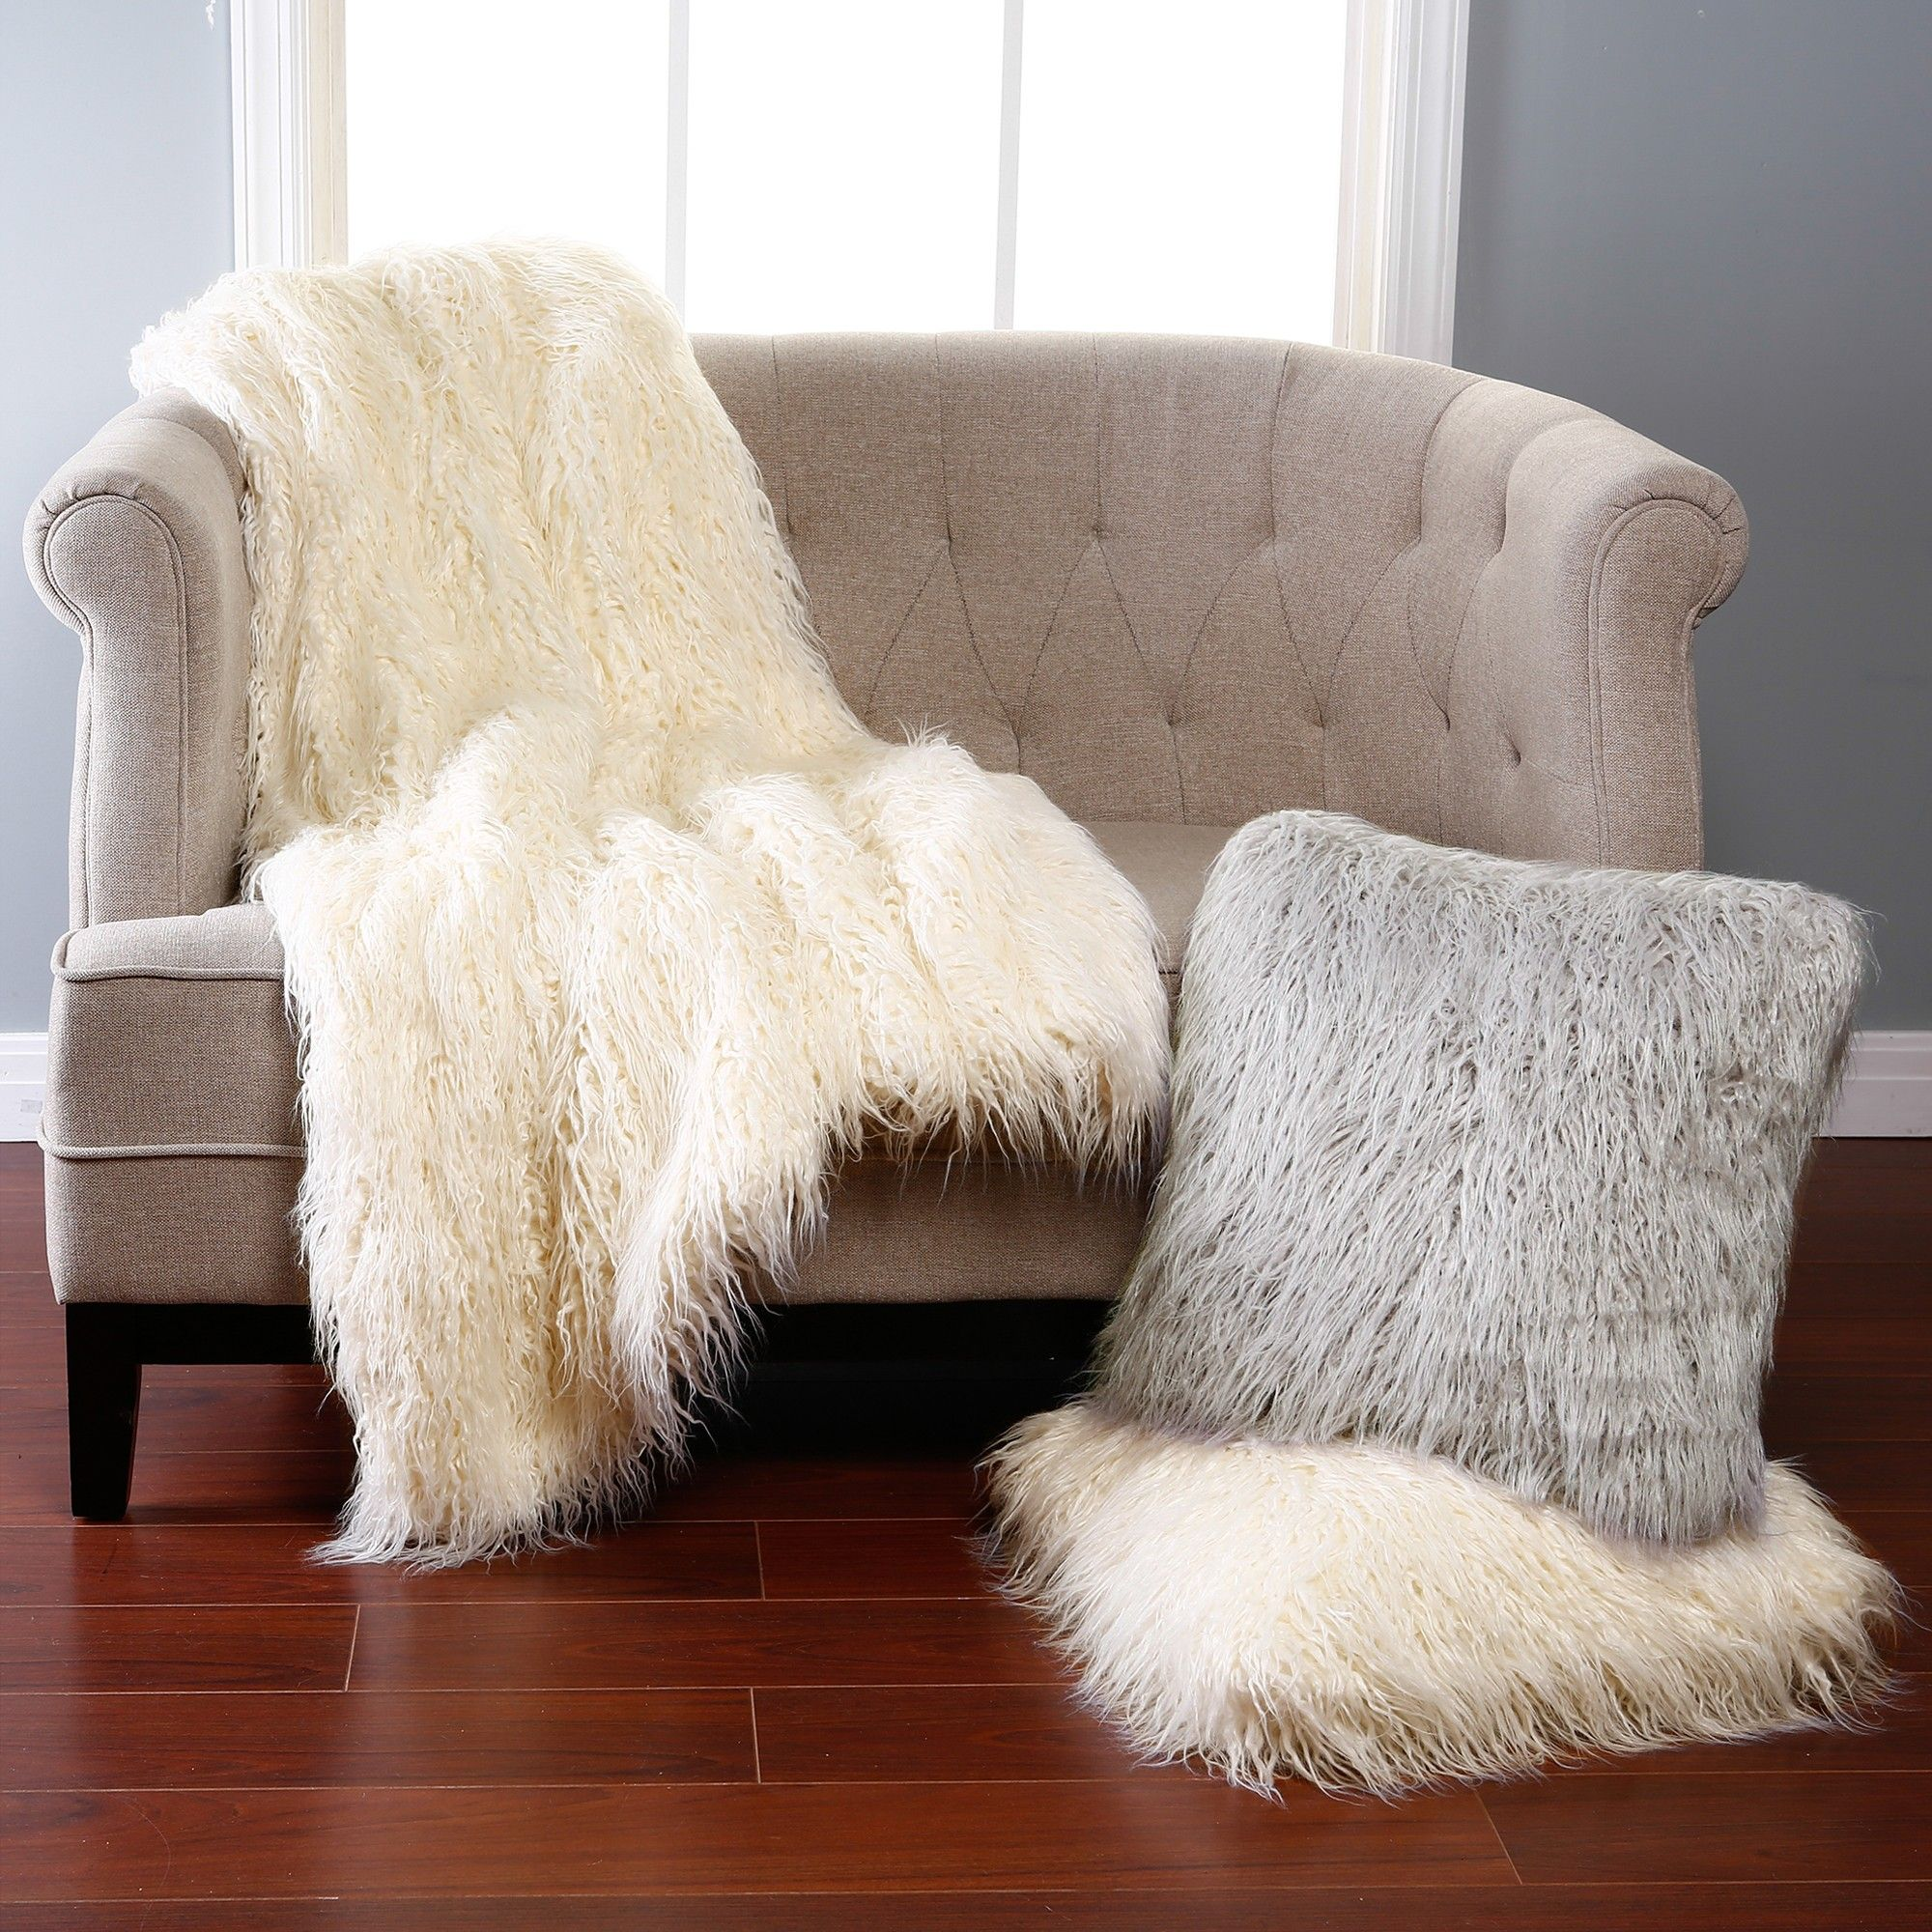 bedroom chair with blanket white plastic lounge chairs outdoor comfy faux sheepskin rug for floor decor ideas